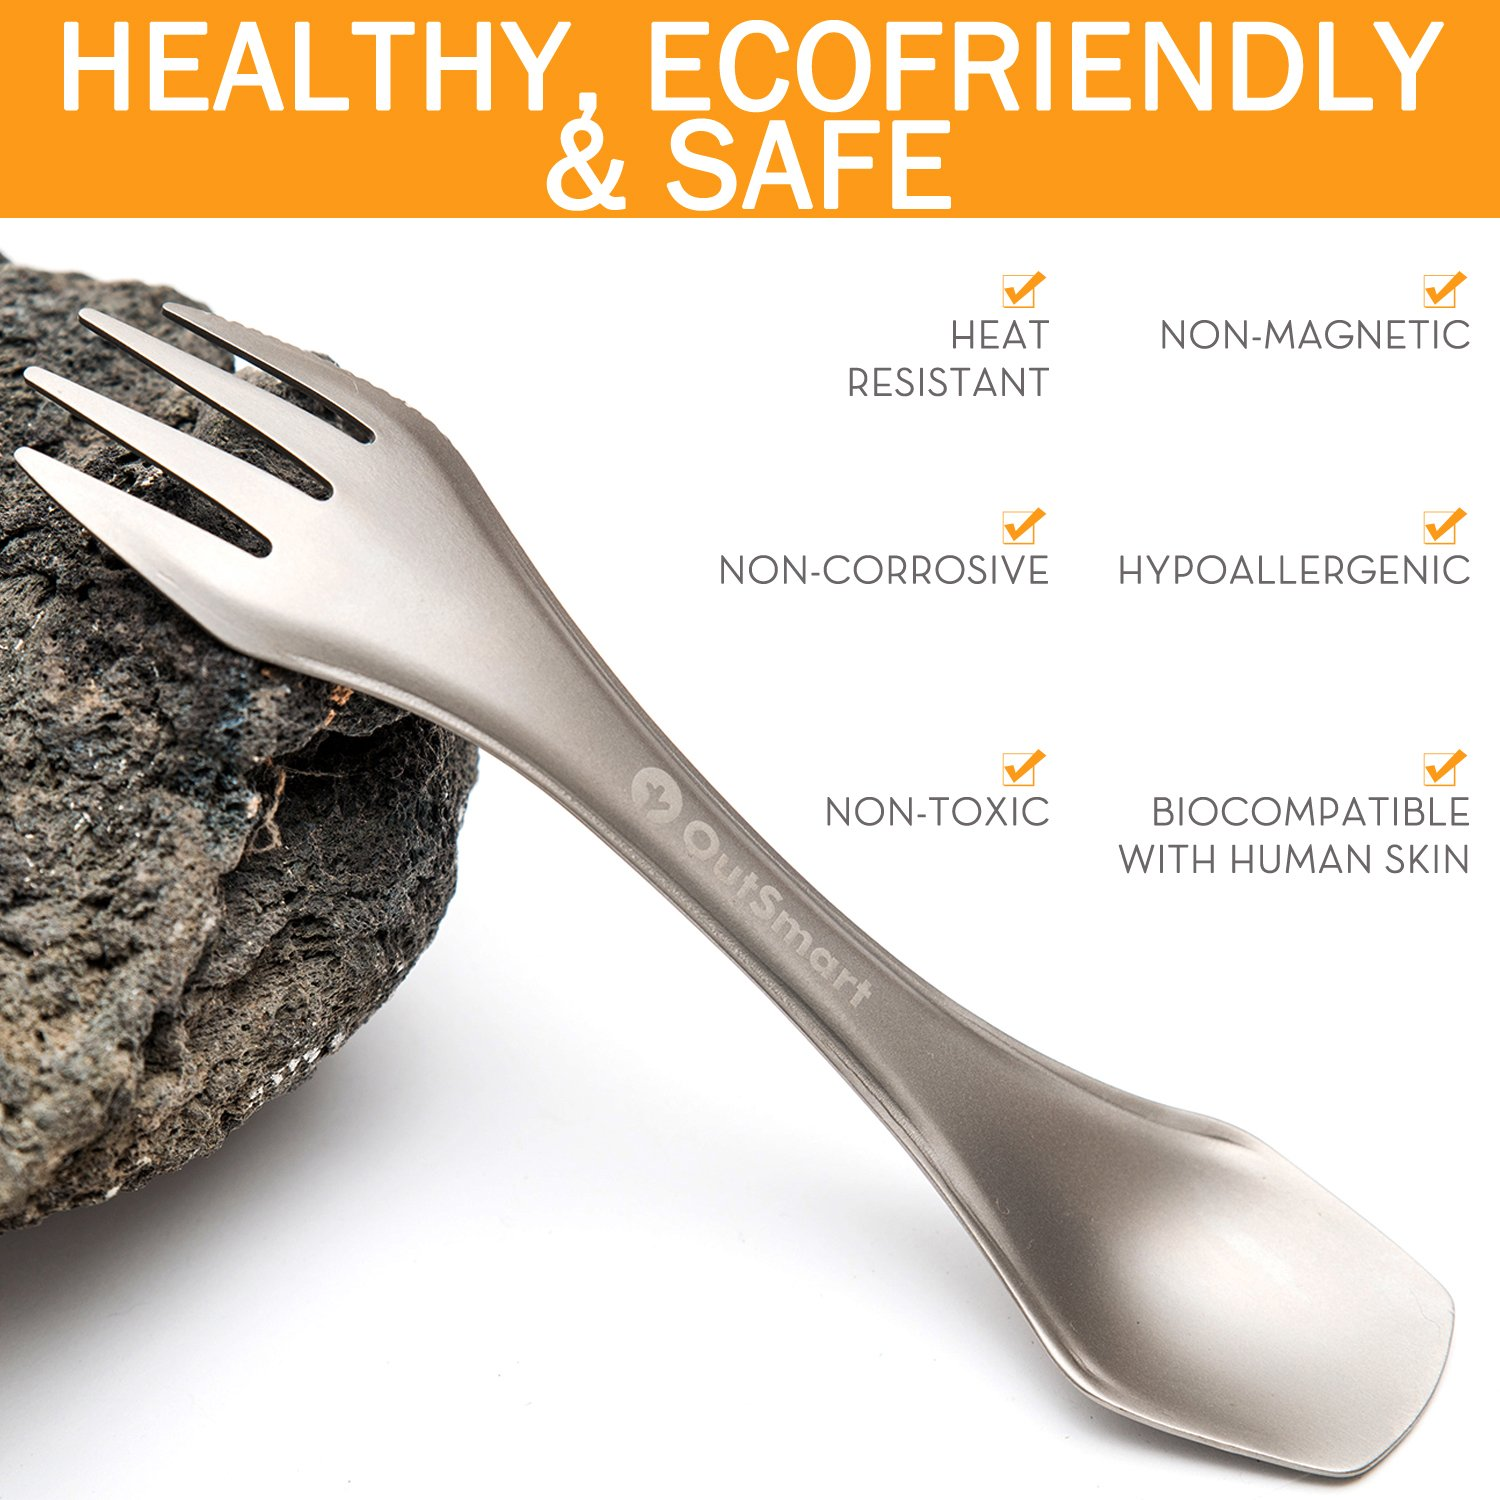 Outsmart 3 in 1 Ultralight Titanium Spork | Portable and Reusable Multi Tool for Backpacking and Camping | Feed Your Face, Leave No Trace by OutSmart (Image #4)